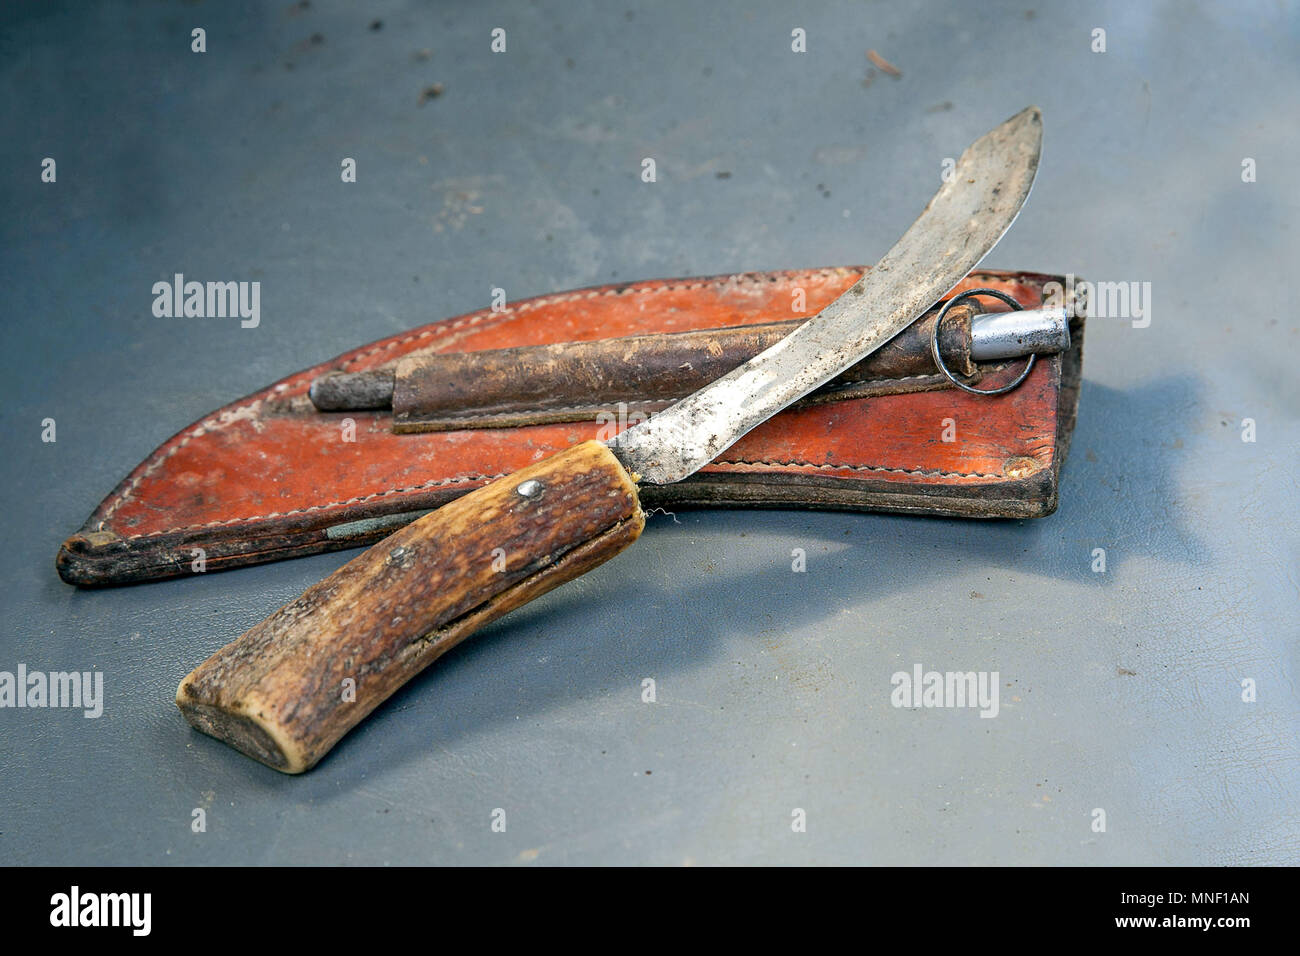 Worn butchers knife with a steel sharpener and a leather pouch - Stock Image